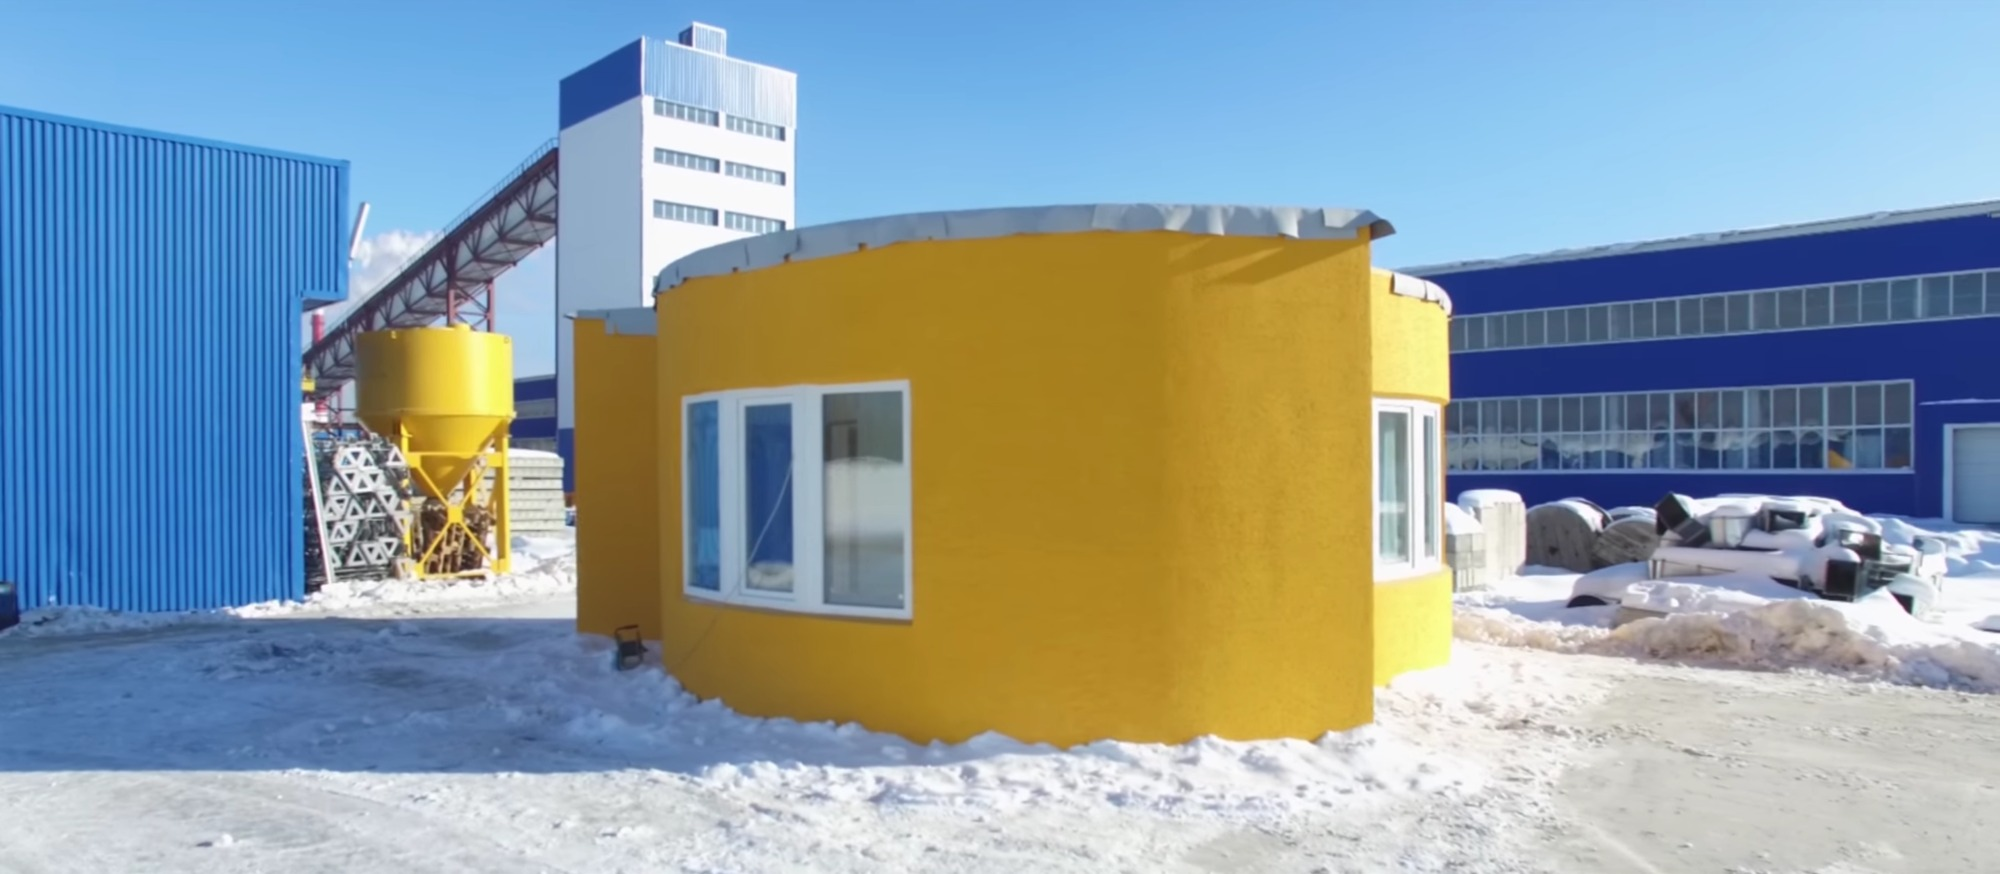 Build your own 3d printed house all in one day archdaily for 3d house builder online